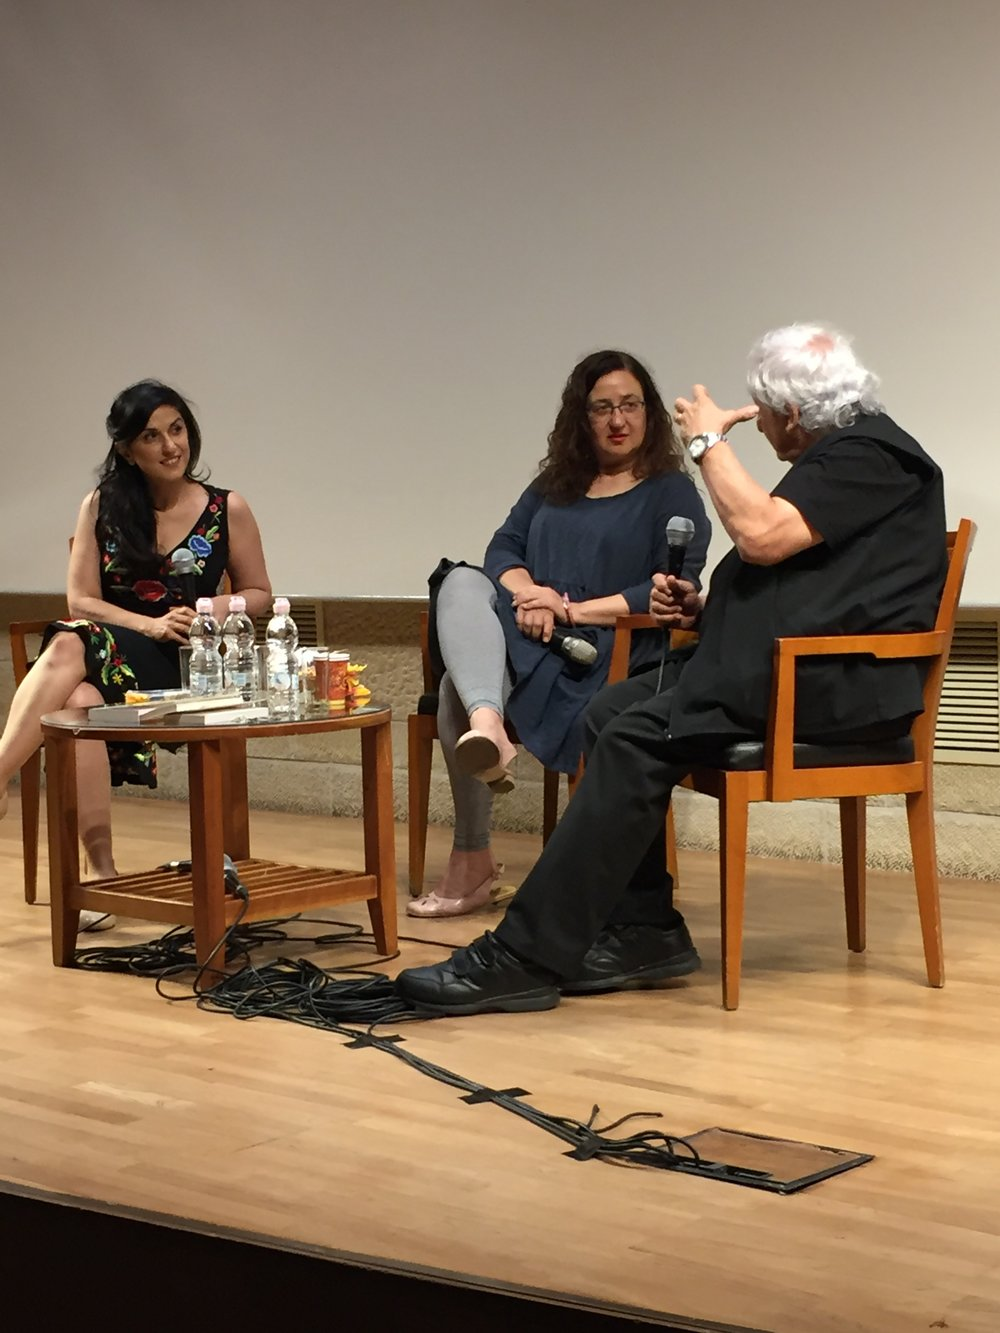 A.B. Yehoshua in conversation with Dorit Rabinyan chaired by Bilhah Ben Eliyahu, to mark 40 years of the publication of The Lover by A.B. Yehoshua and on All the Rivers by Dorit Rabinyan.